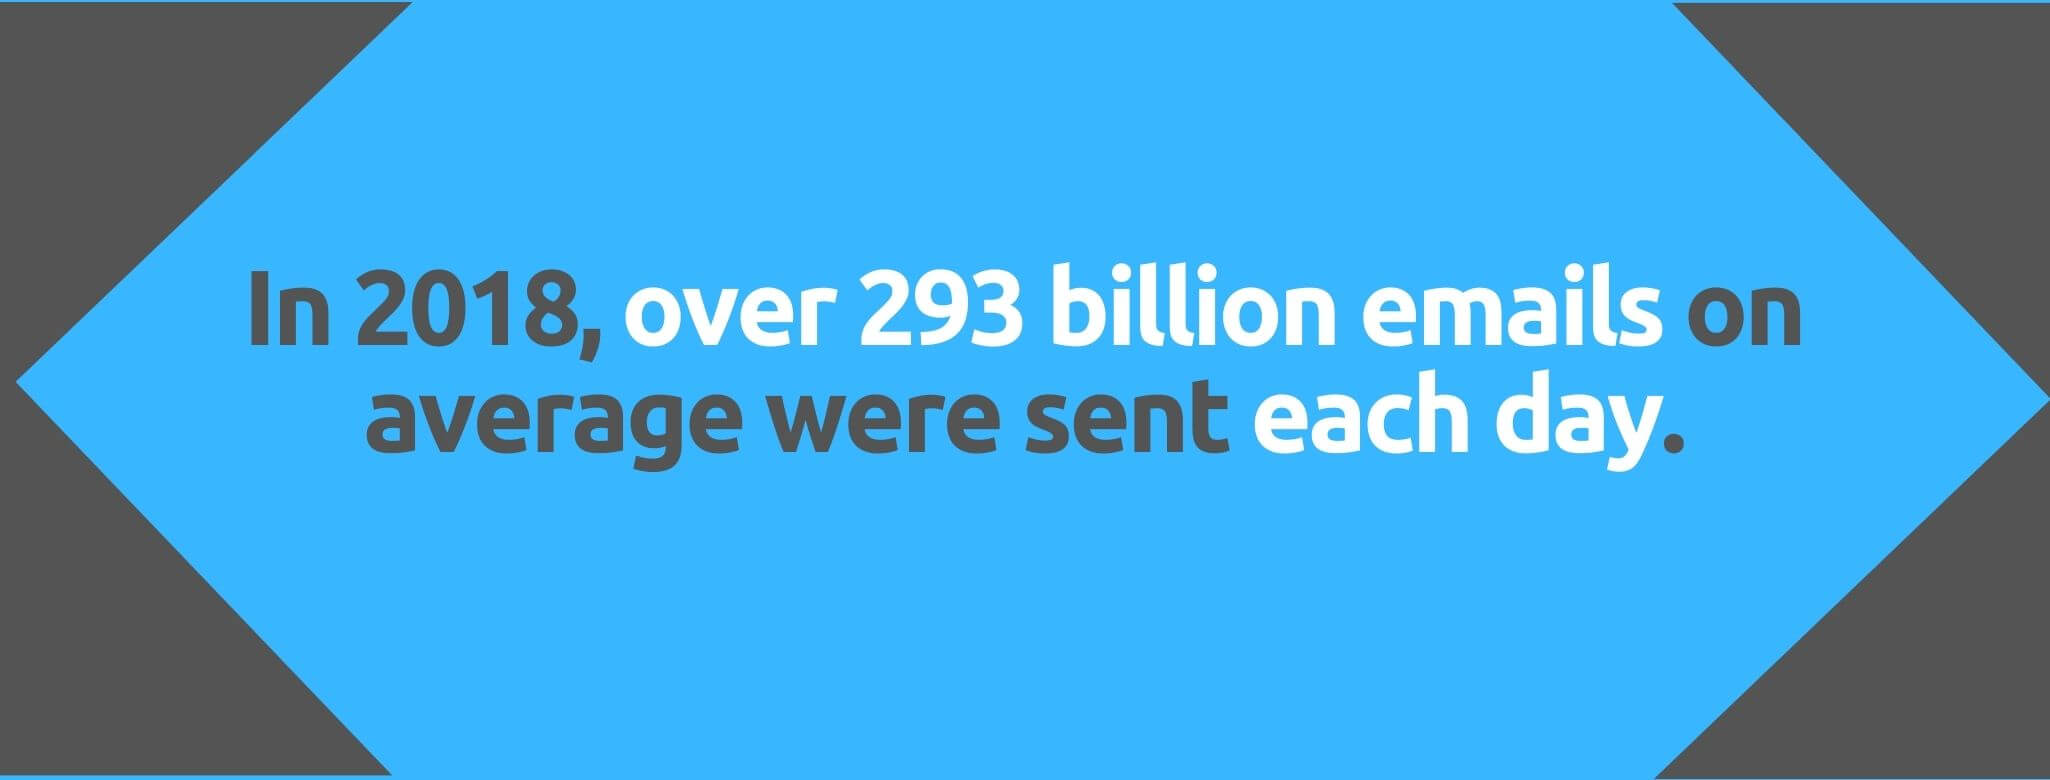 In 2019, over 293 billion email on average were sent each day - 80+ Email Marketing Stats - Replyco Helpdesk Software for eCommerce